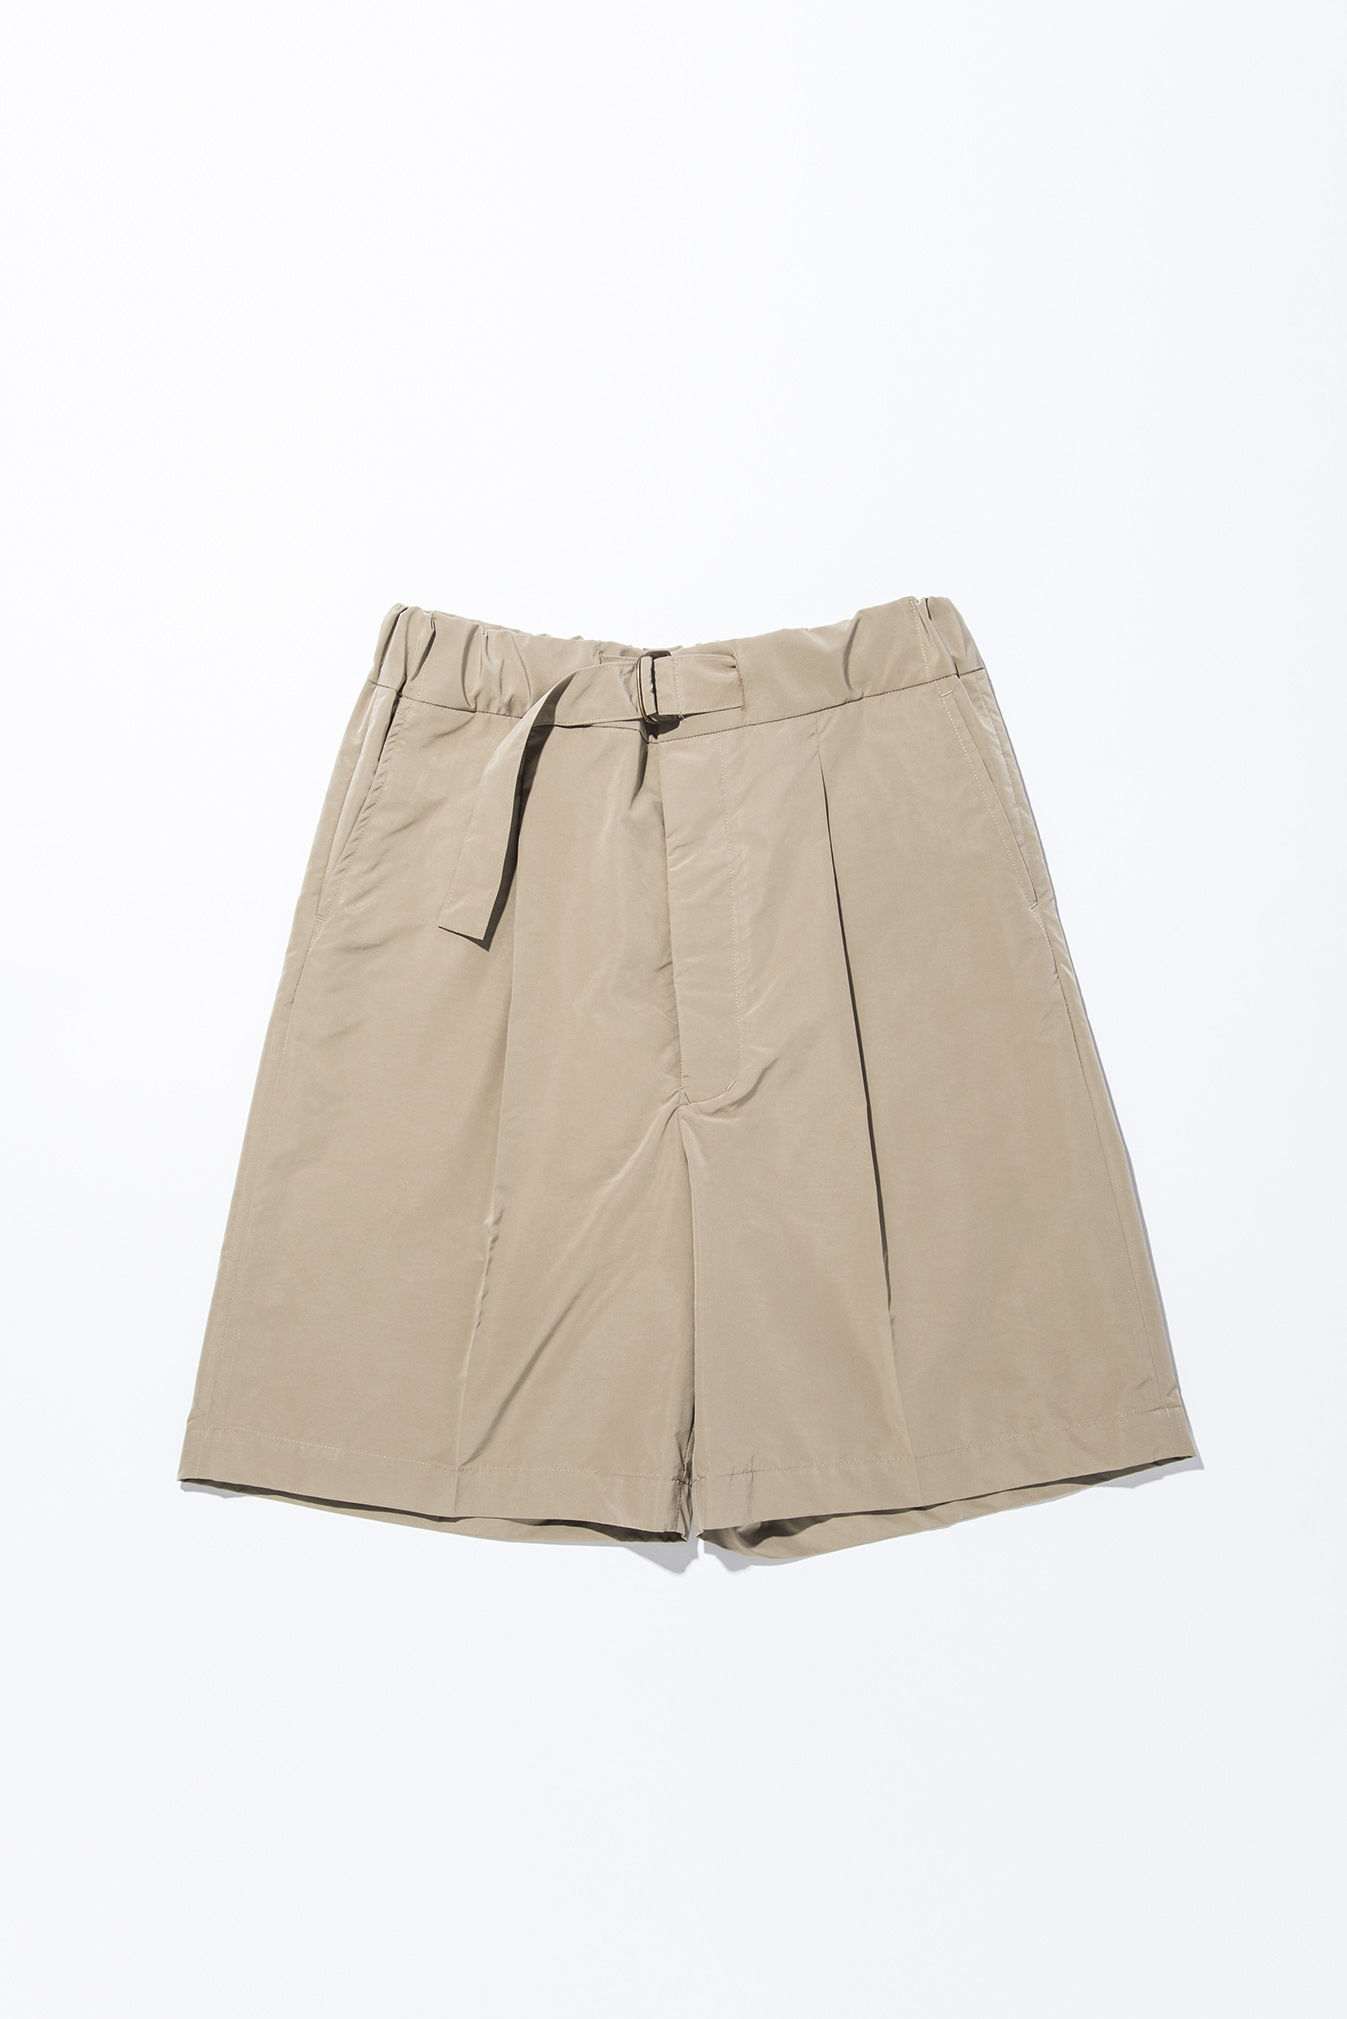 UNITUS(ユナイタス) SS17 Belted Easy Shorts Beige